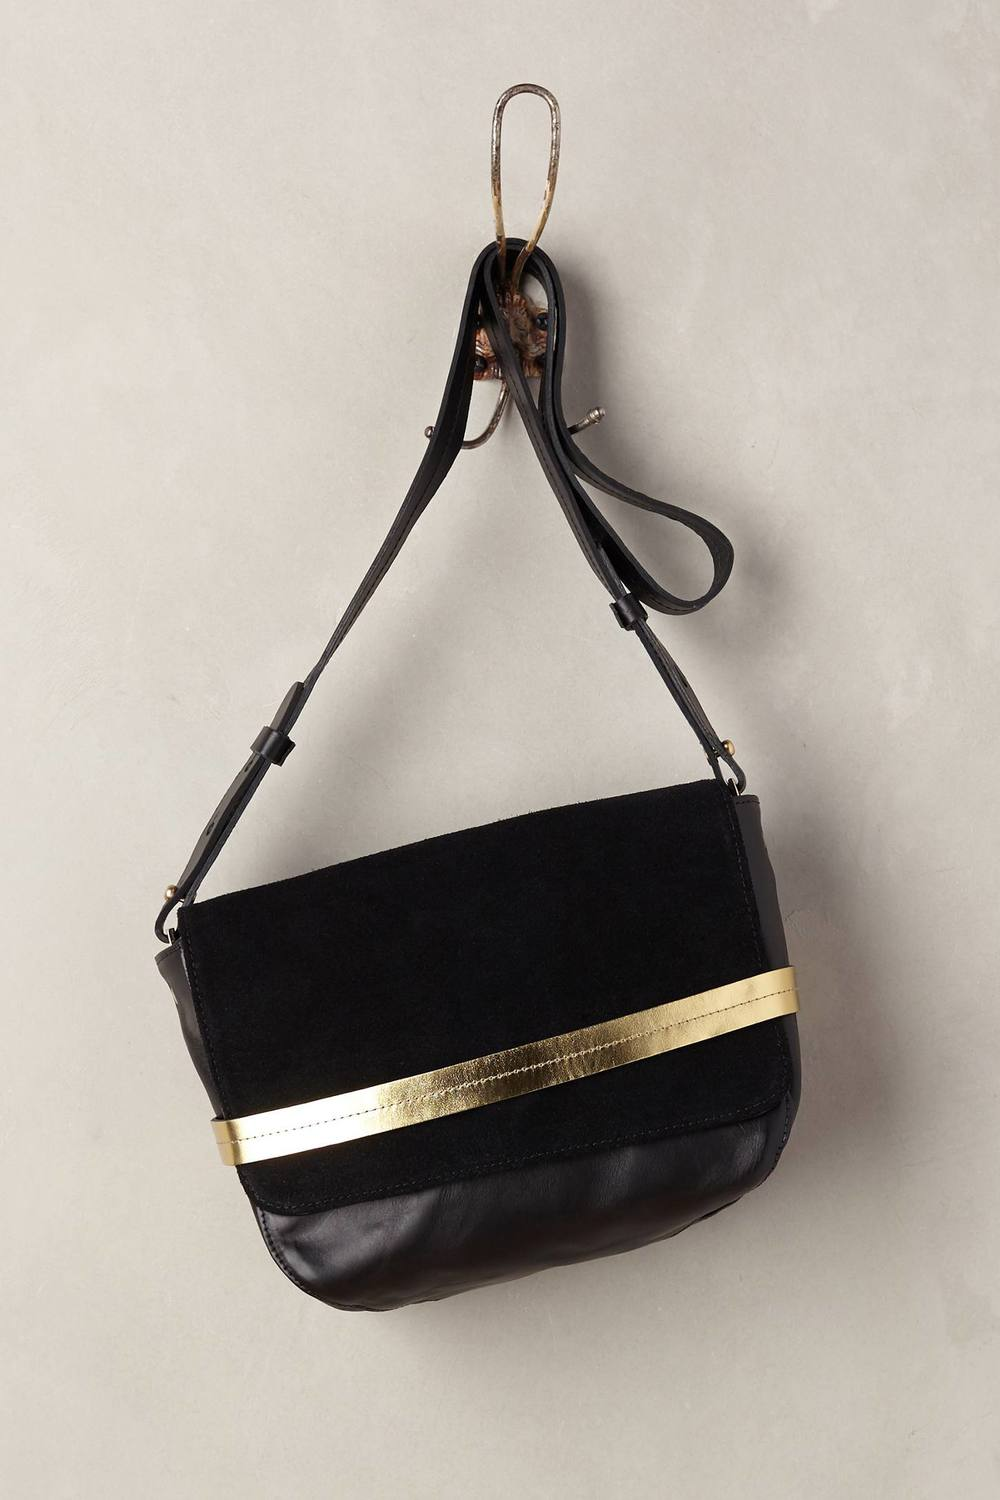 Clare V Lou Crossbody Bag Black One Size Bags